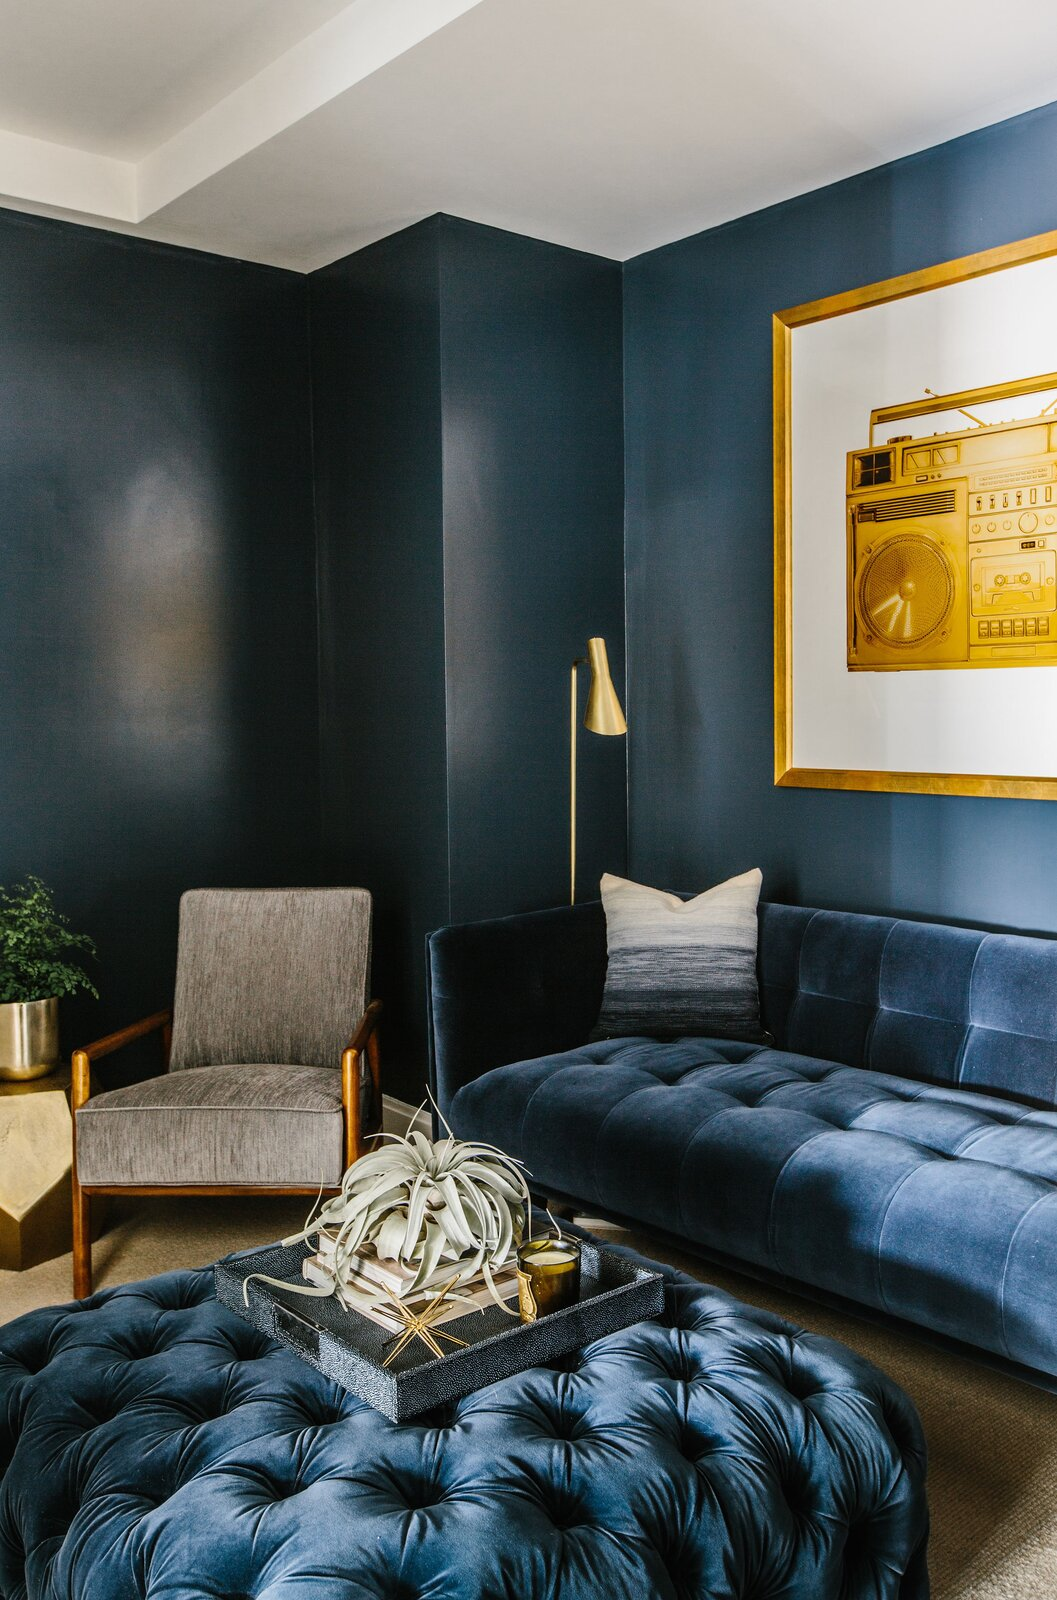 Glassman/Soloman Project by Margaret Costello den with blue walls